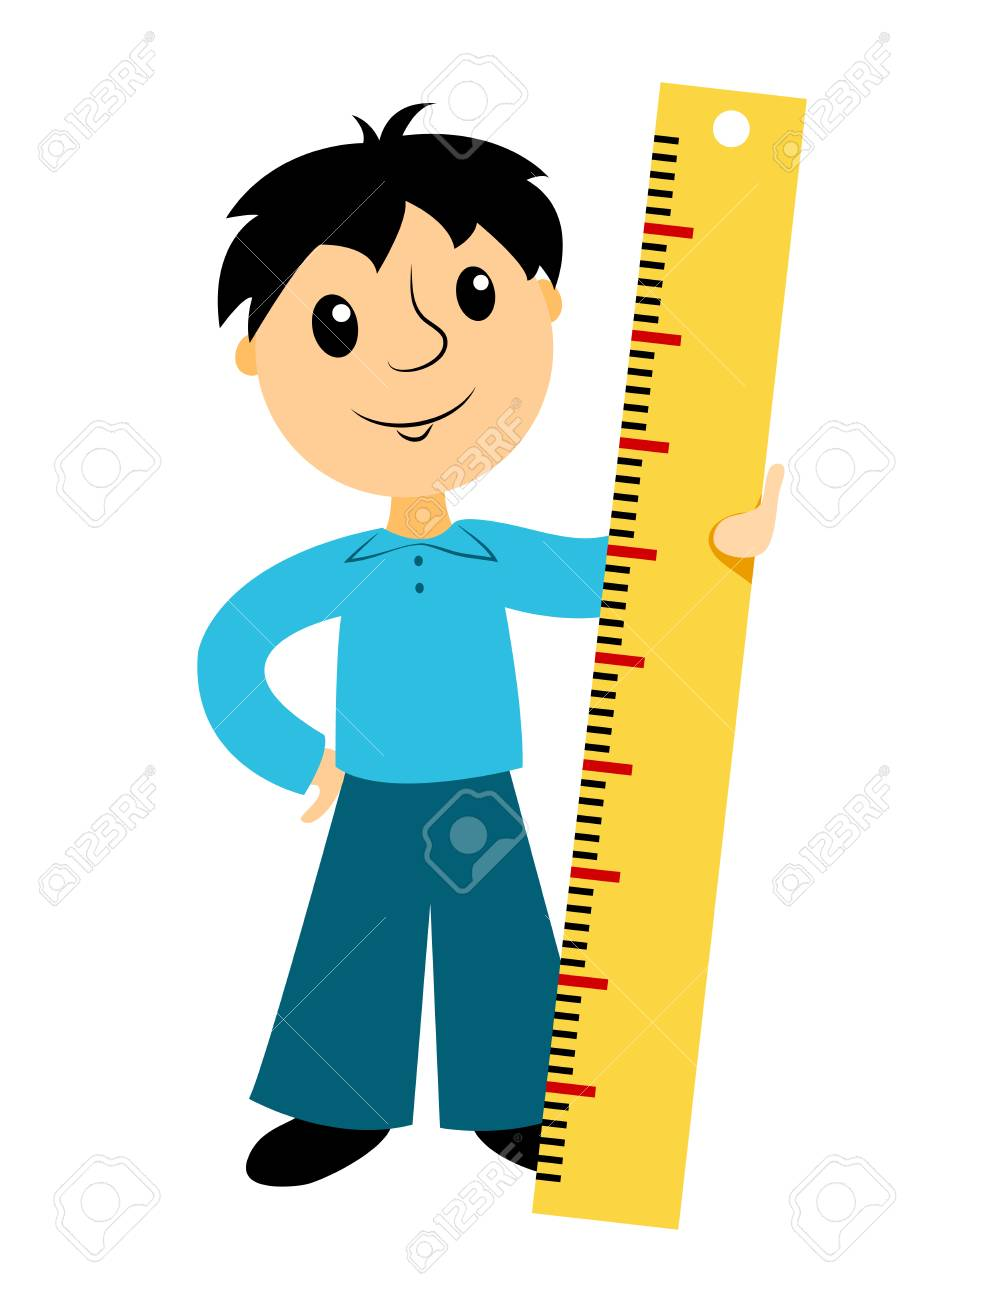 the boy holds a ruler clip art for buseness isolated on white rh 123rf com ruler clipart free rules clip art free